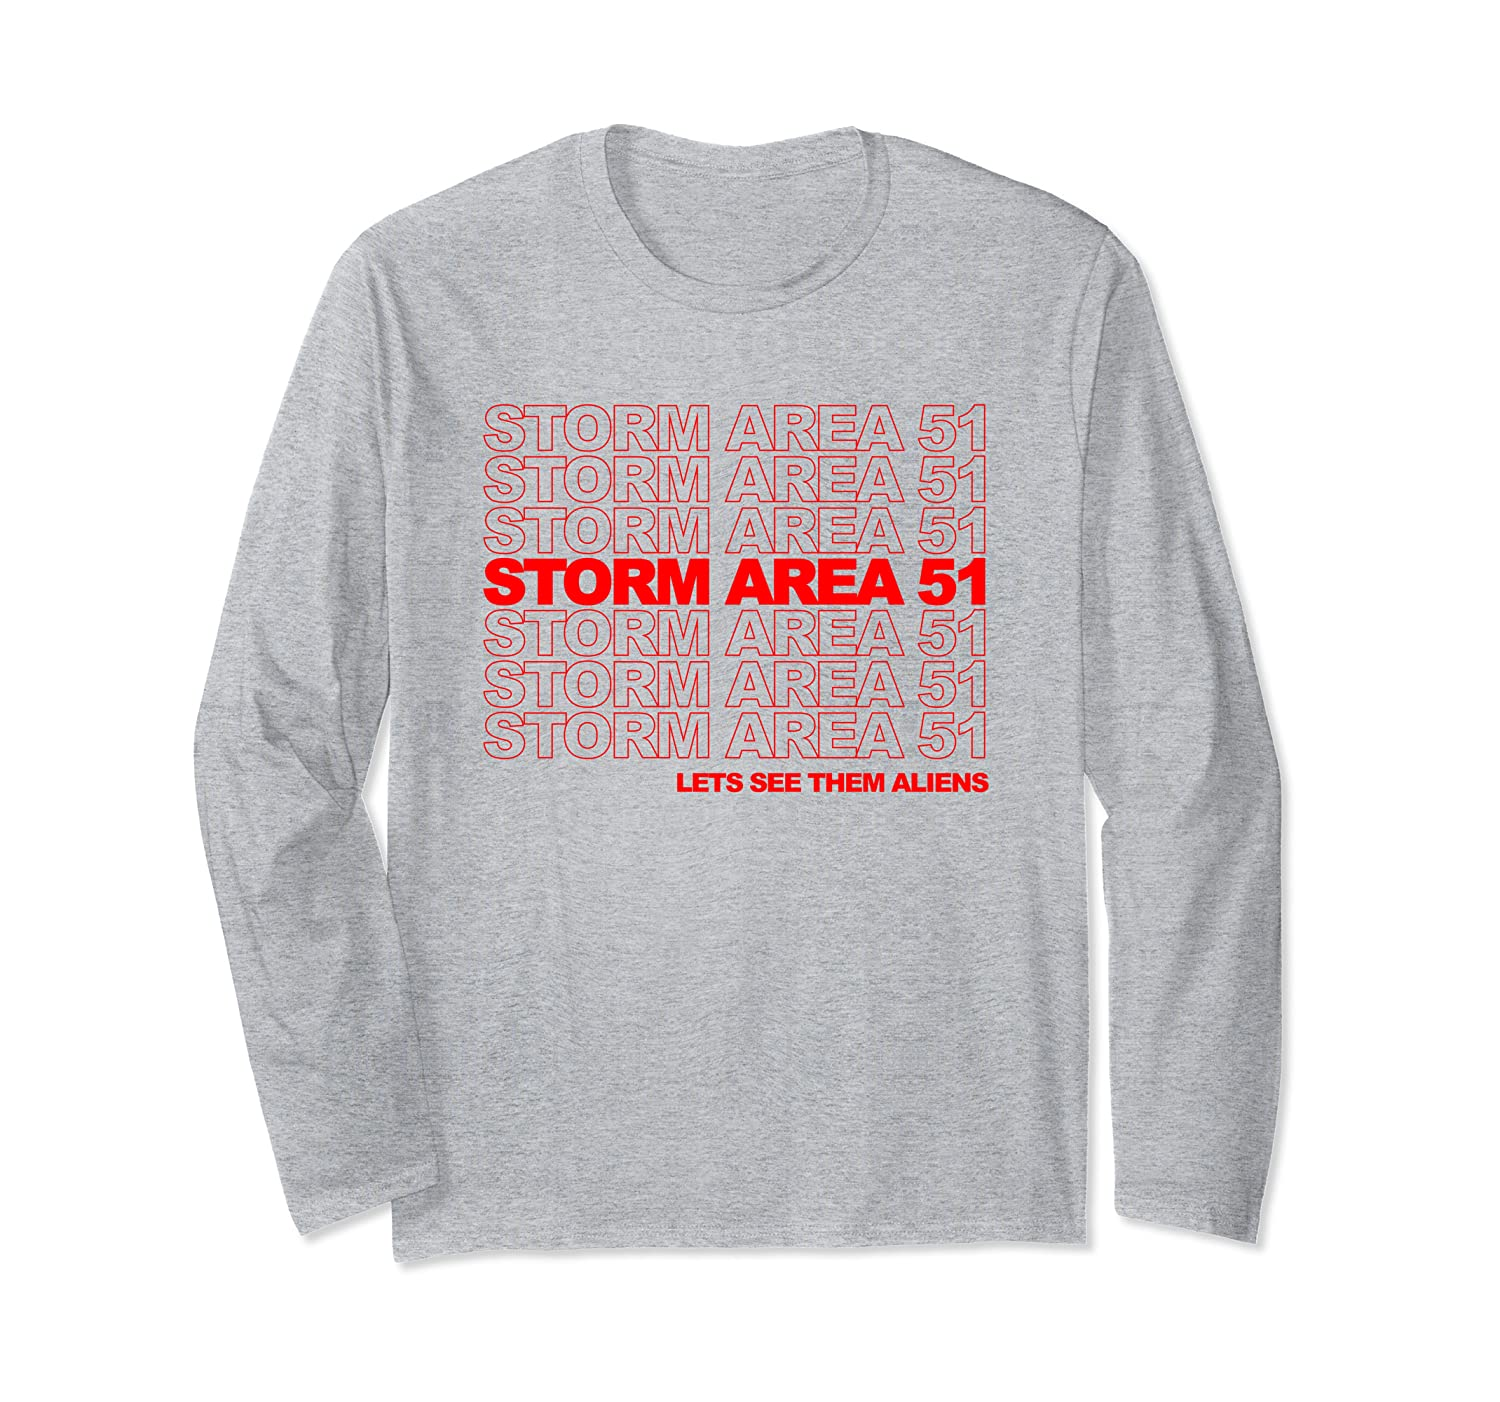 Storm Area 51 Alien Parody Shirts